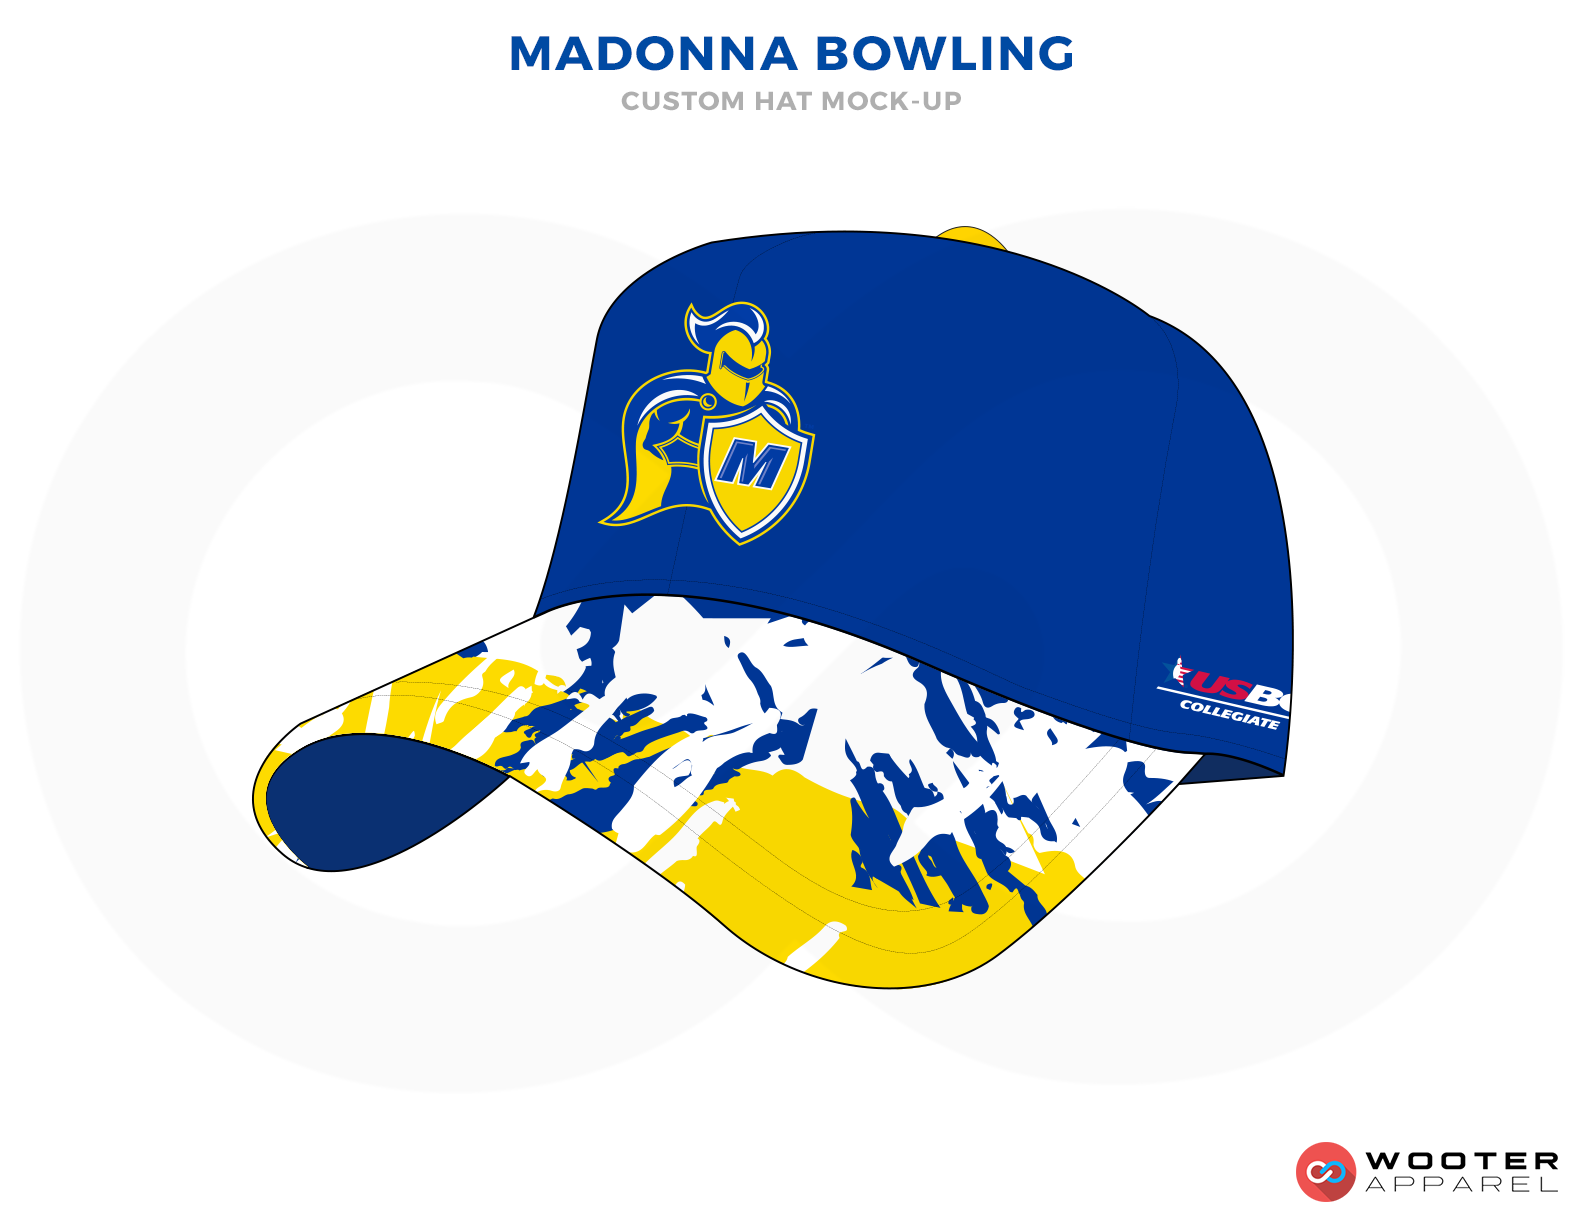 MADONNA BOWLING Blue Red Yellow and White custom bowling hat